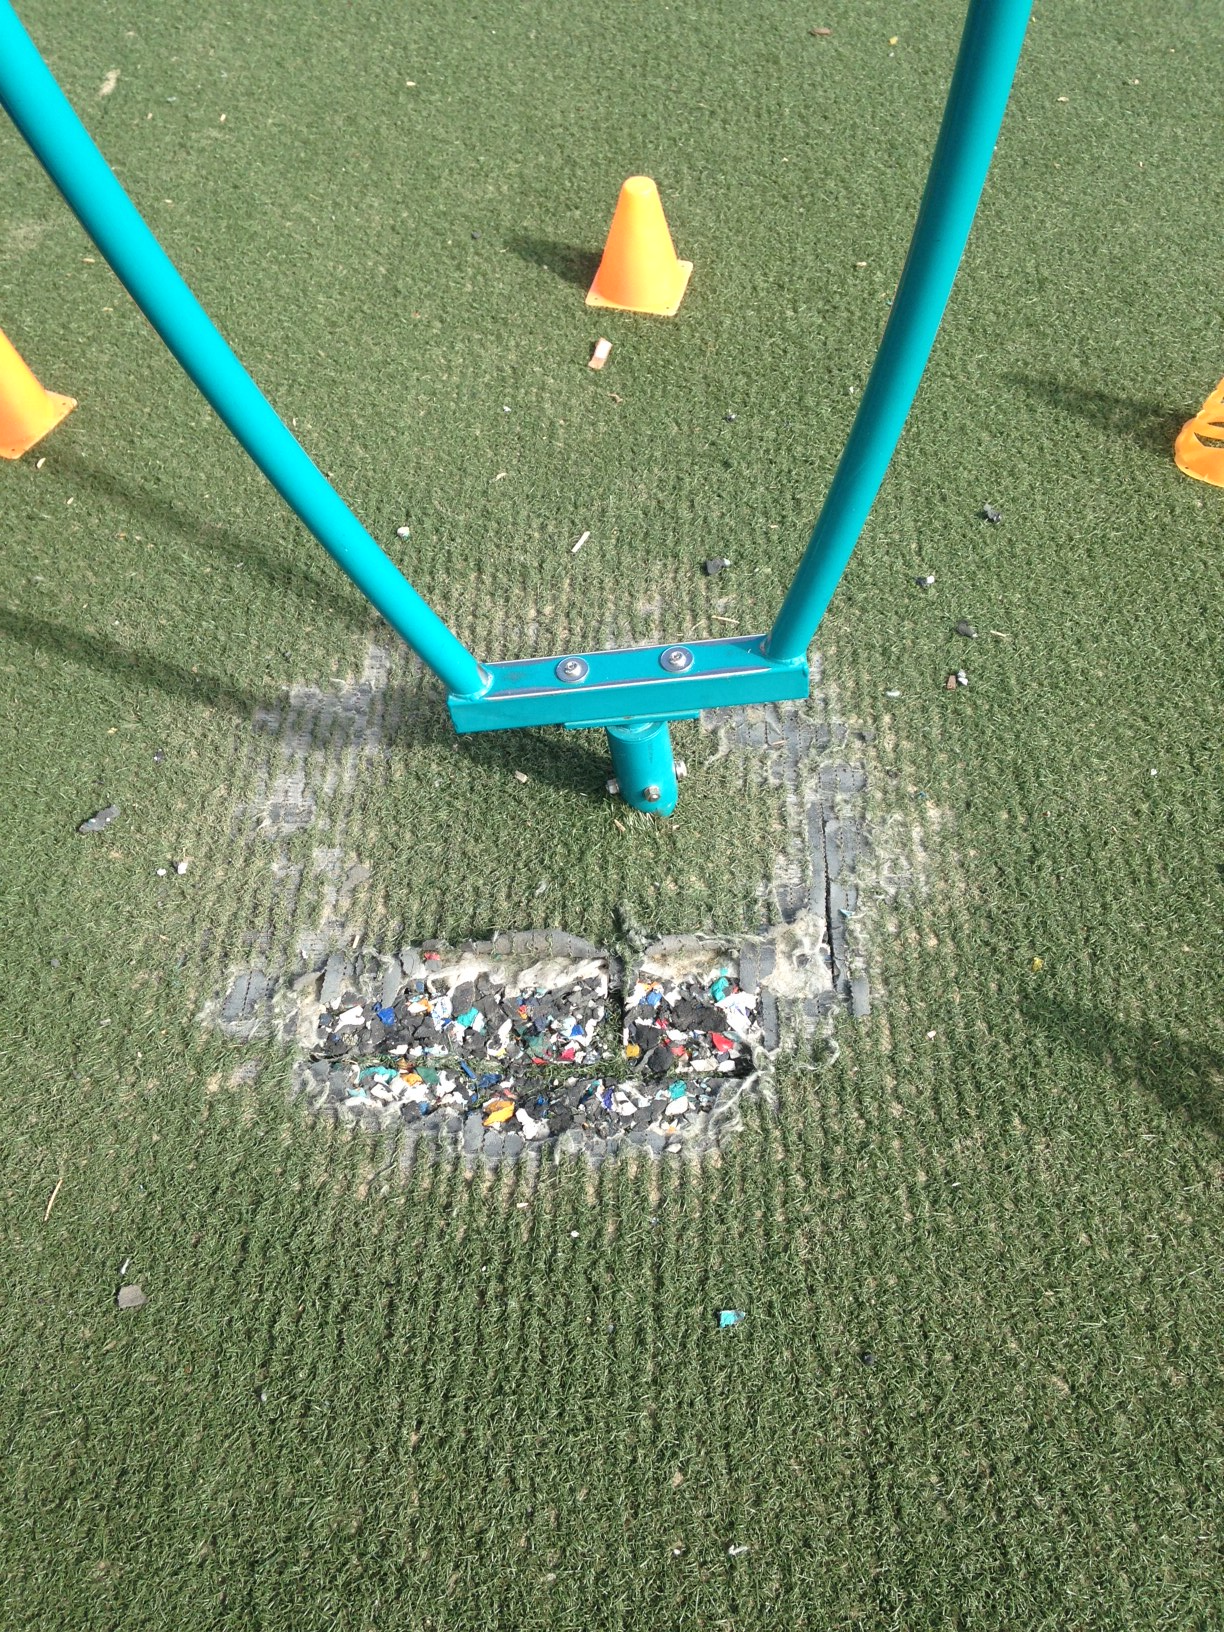 Grants for Playground safety surface and equipment – Dublin CA